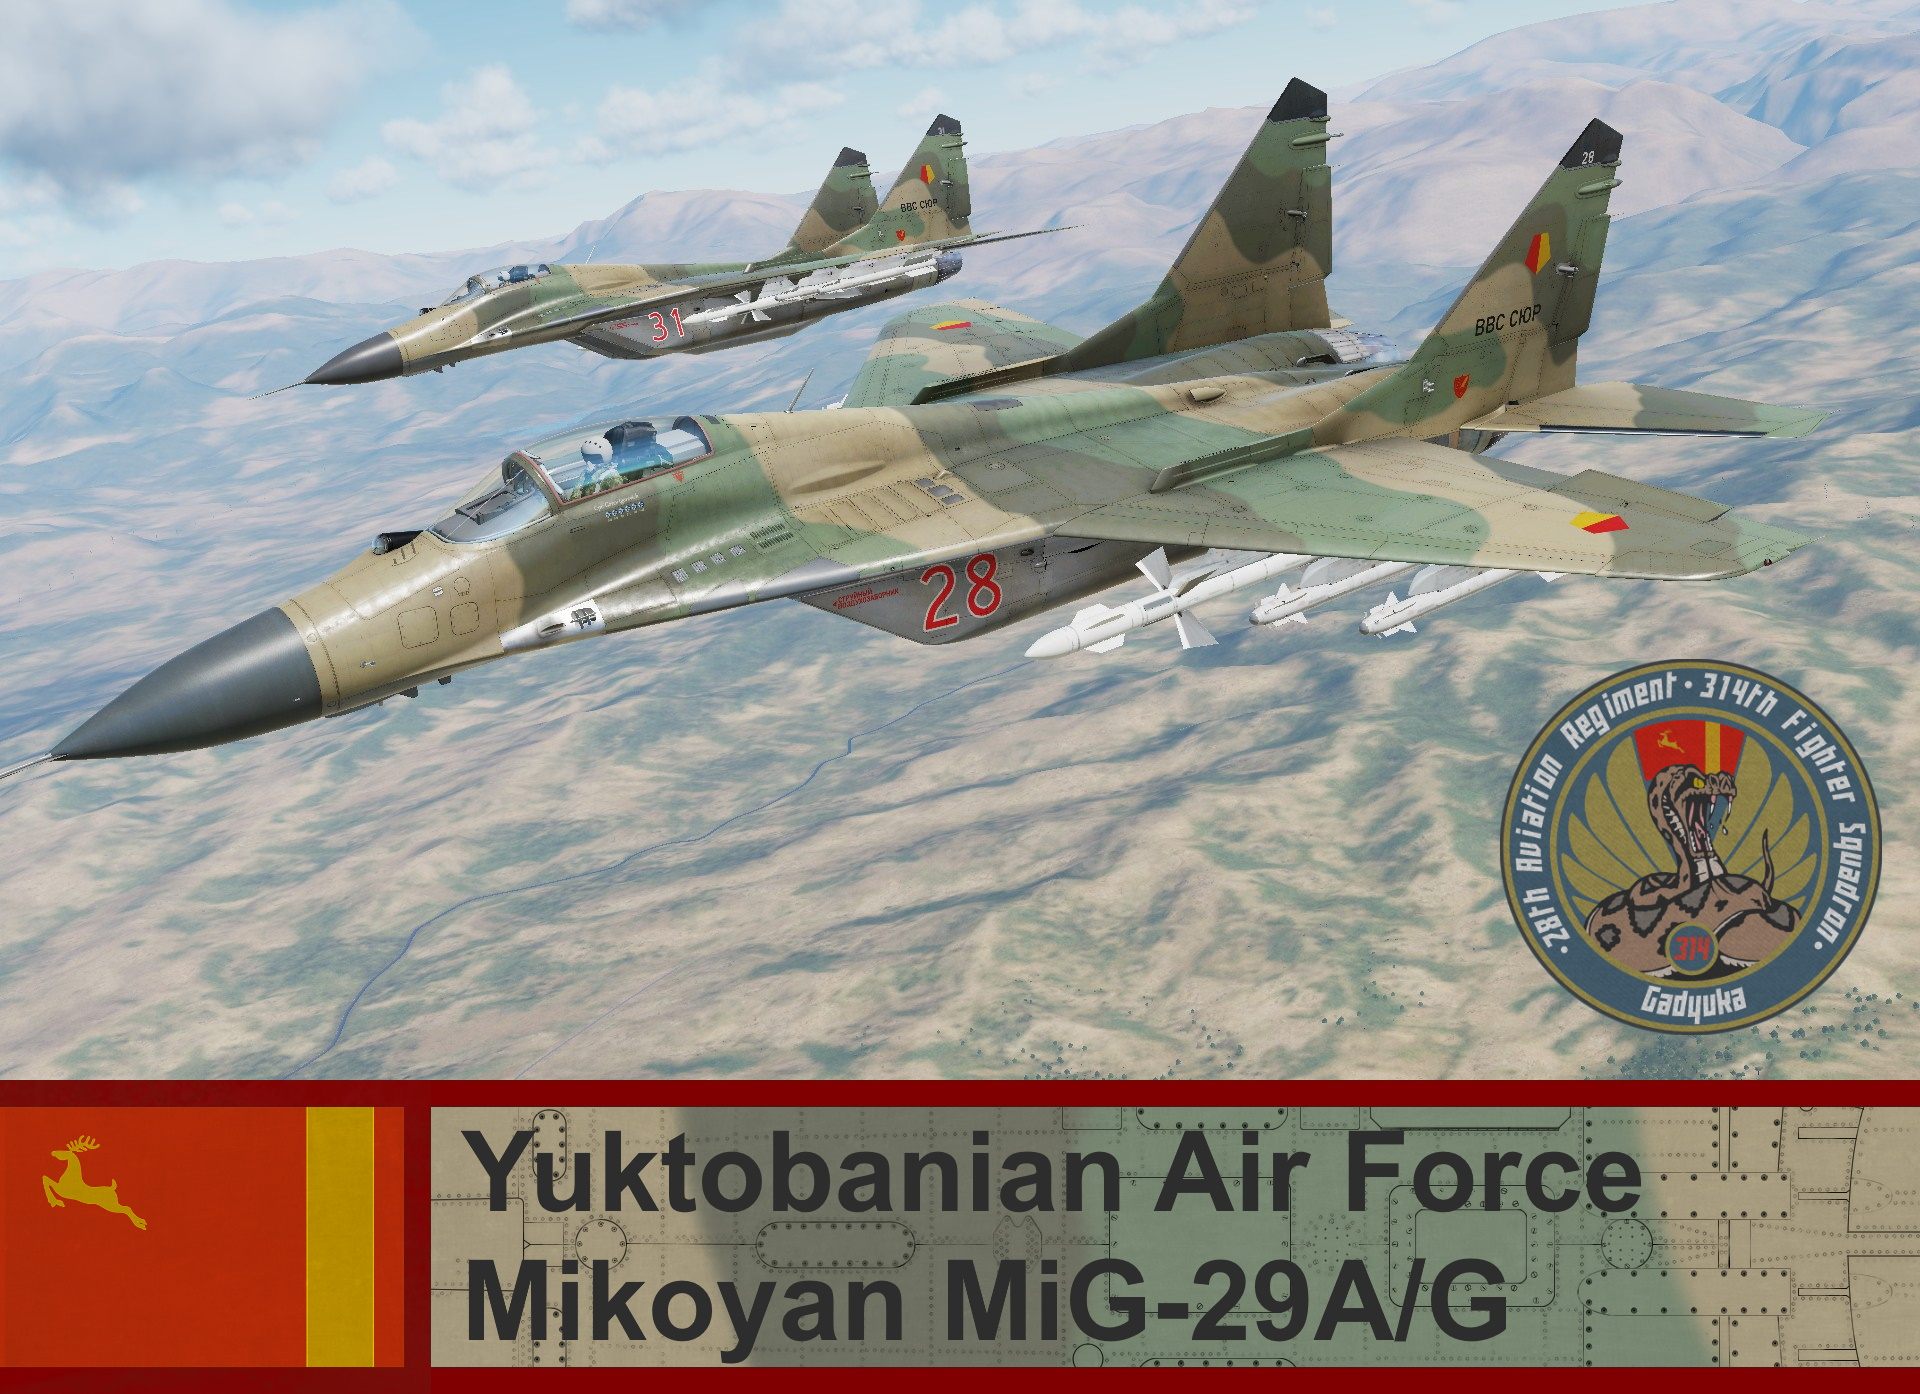 Yuktobanian Air Force Mig-29A/G - Ace Combat 5 (314th Fighter Squadron)